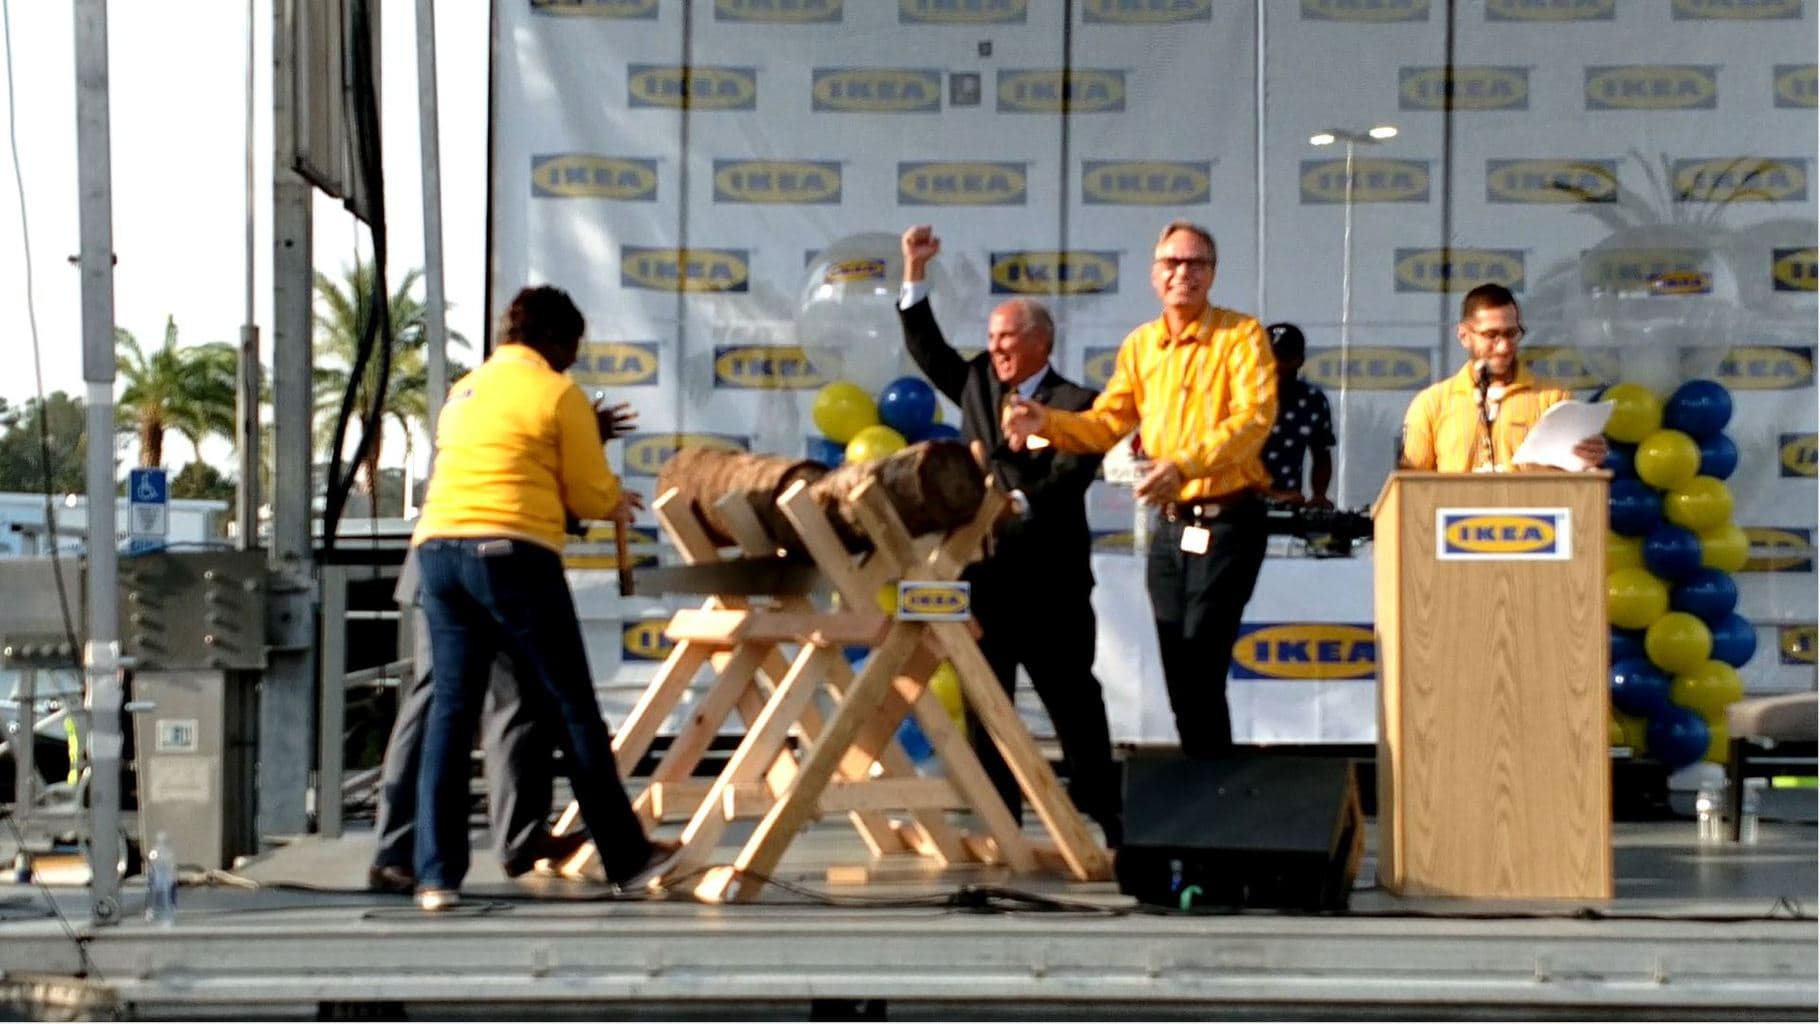 IKEA Opens with Big Fanfare as CM Becton Helps Cut Ceremony Log